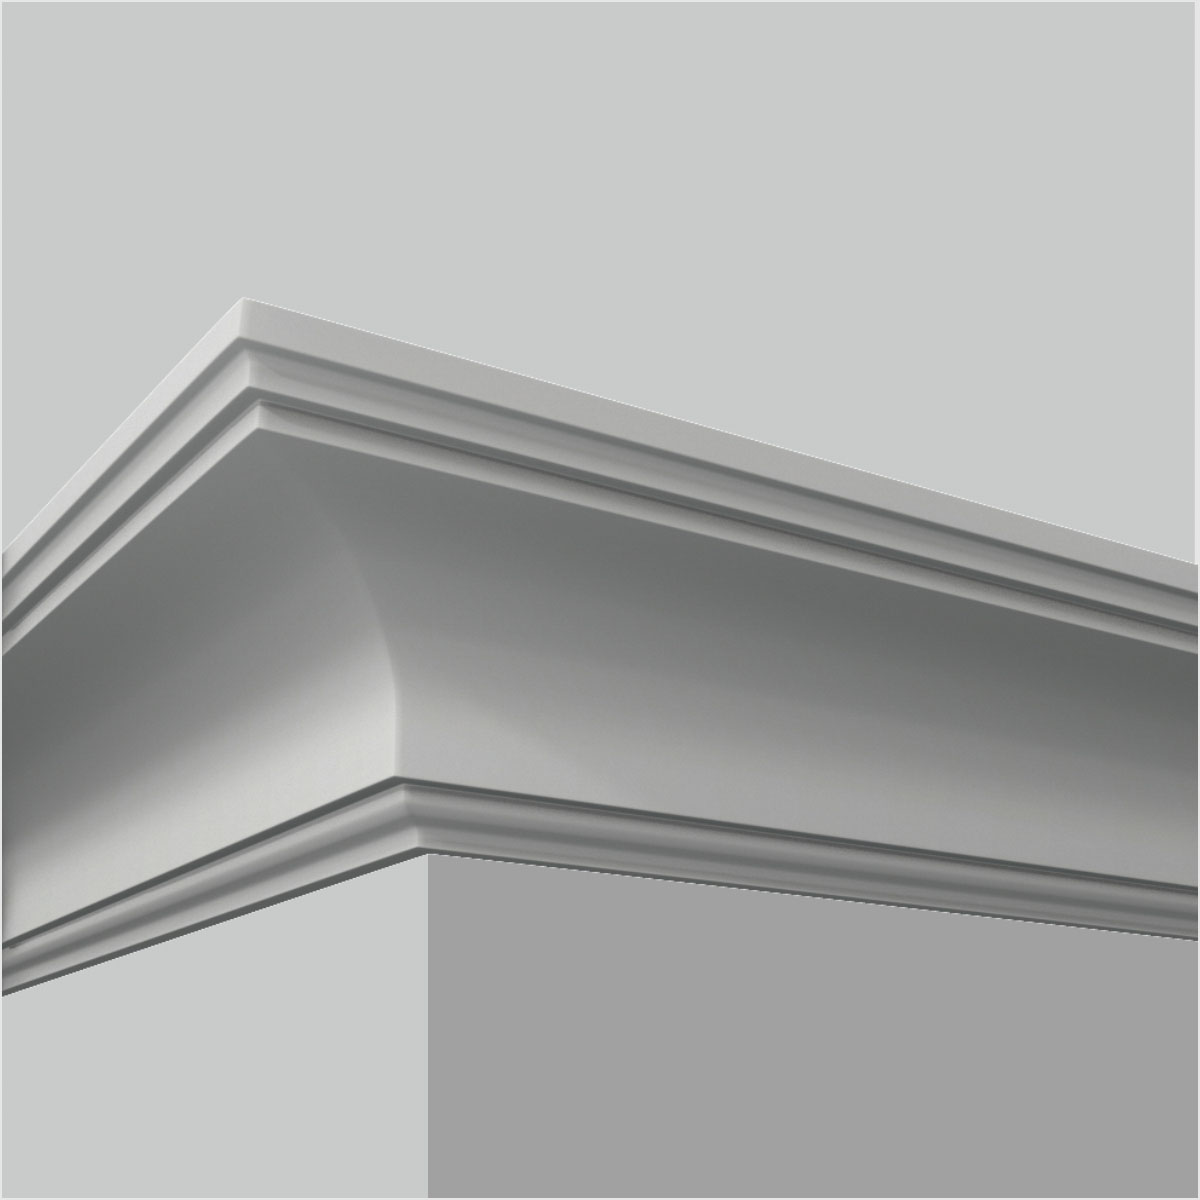 polyurethane 8 foot ceiling crown molding